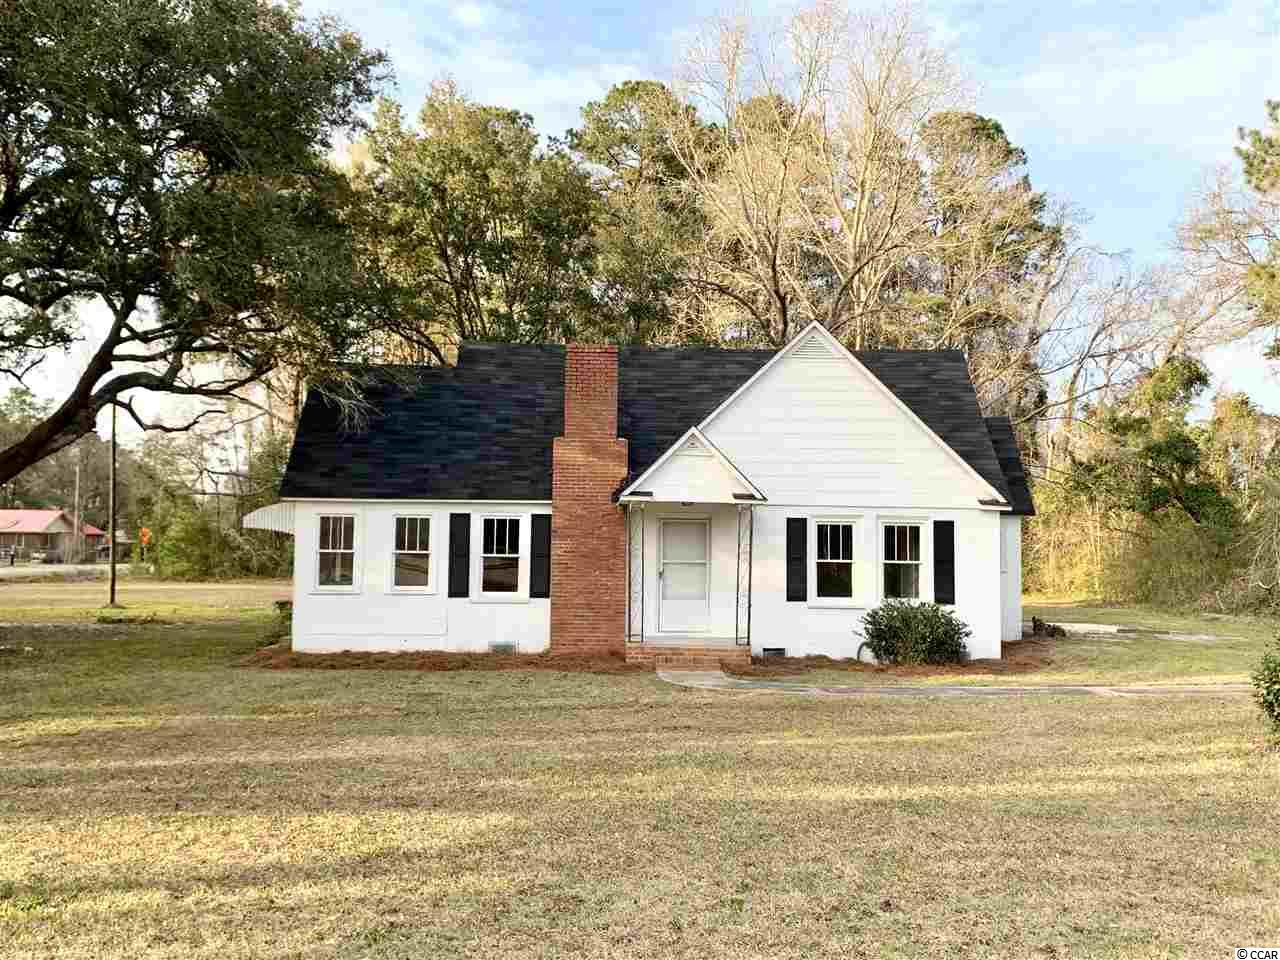 Large corner .99 acre lot with 200' of frontage on HWY 521. Lot has two driveways one on Greentown Rd and one on HWY 521. 5 min. drive to downtown  Georgetown  Home has new HVAC and roof. Interior features have been updated. Agent is owner.